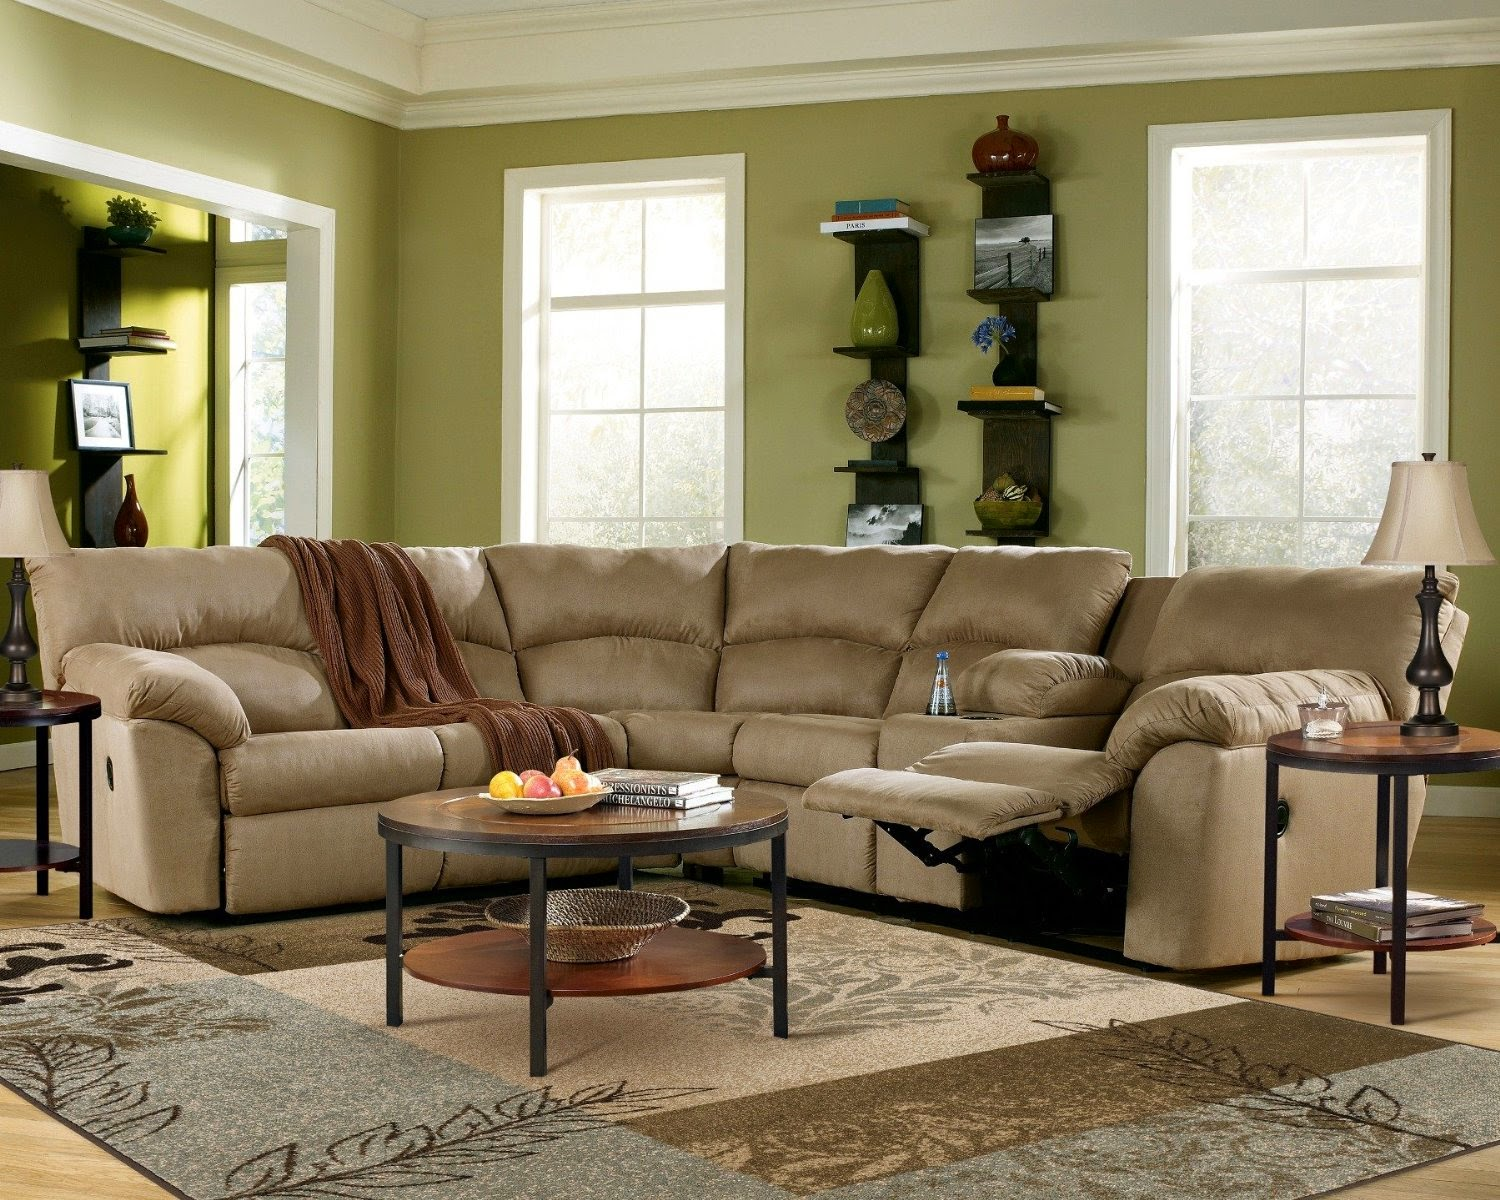 Amazon Sofa Sale Curved Sofa Furniture Reviews Curved Leather Sofa Recliner